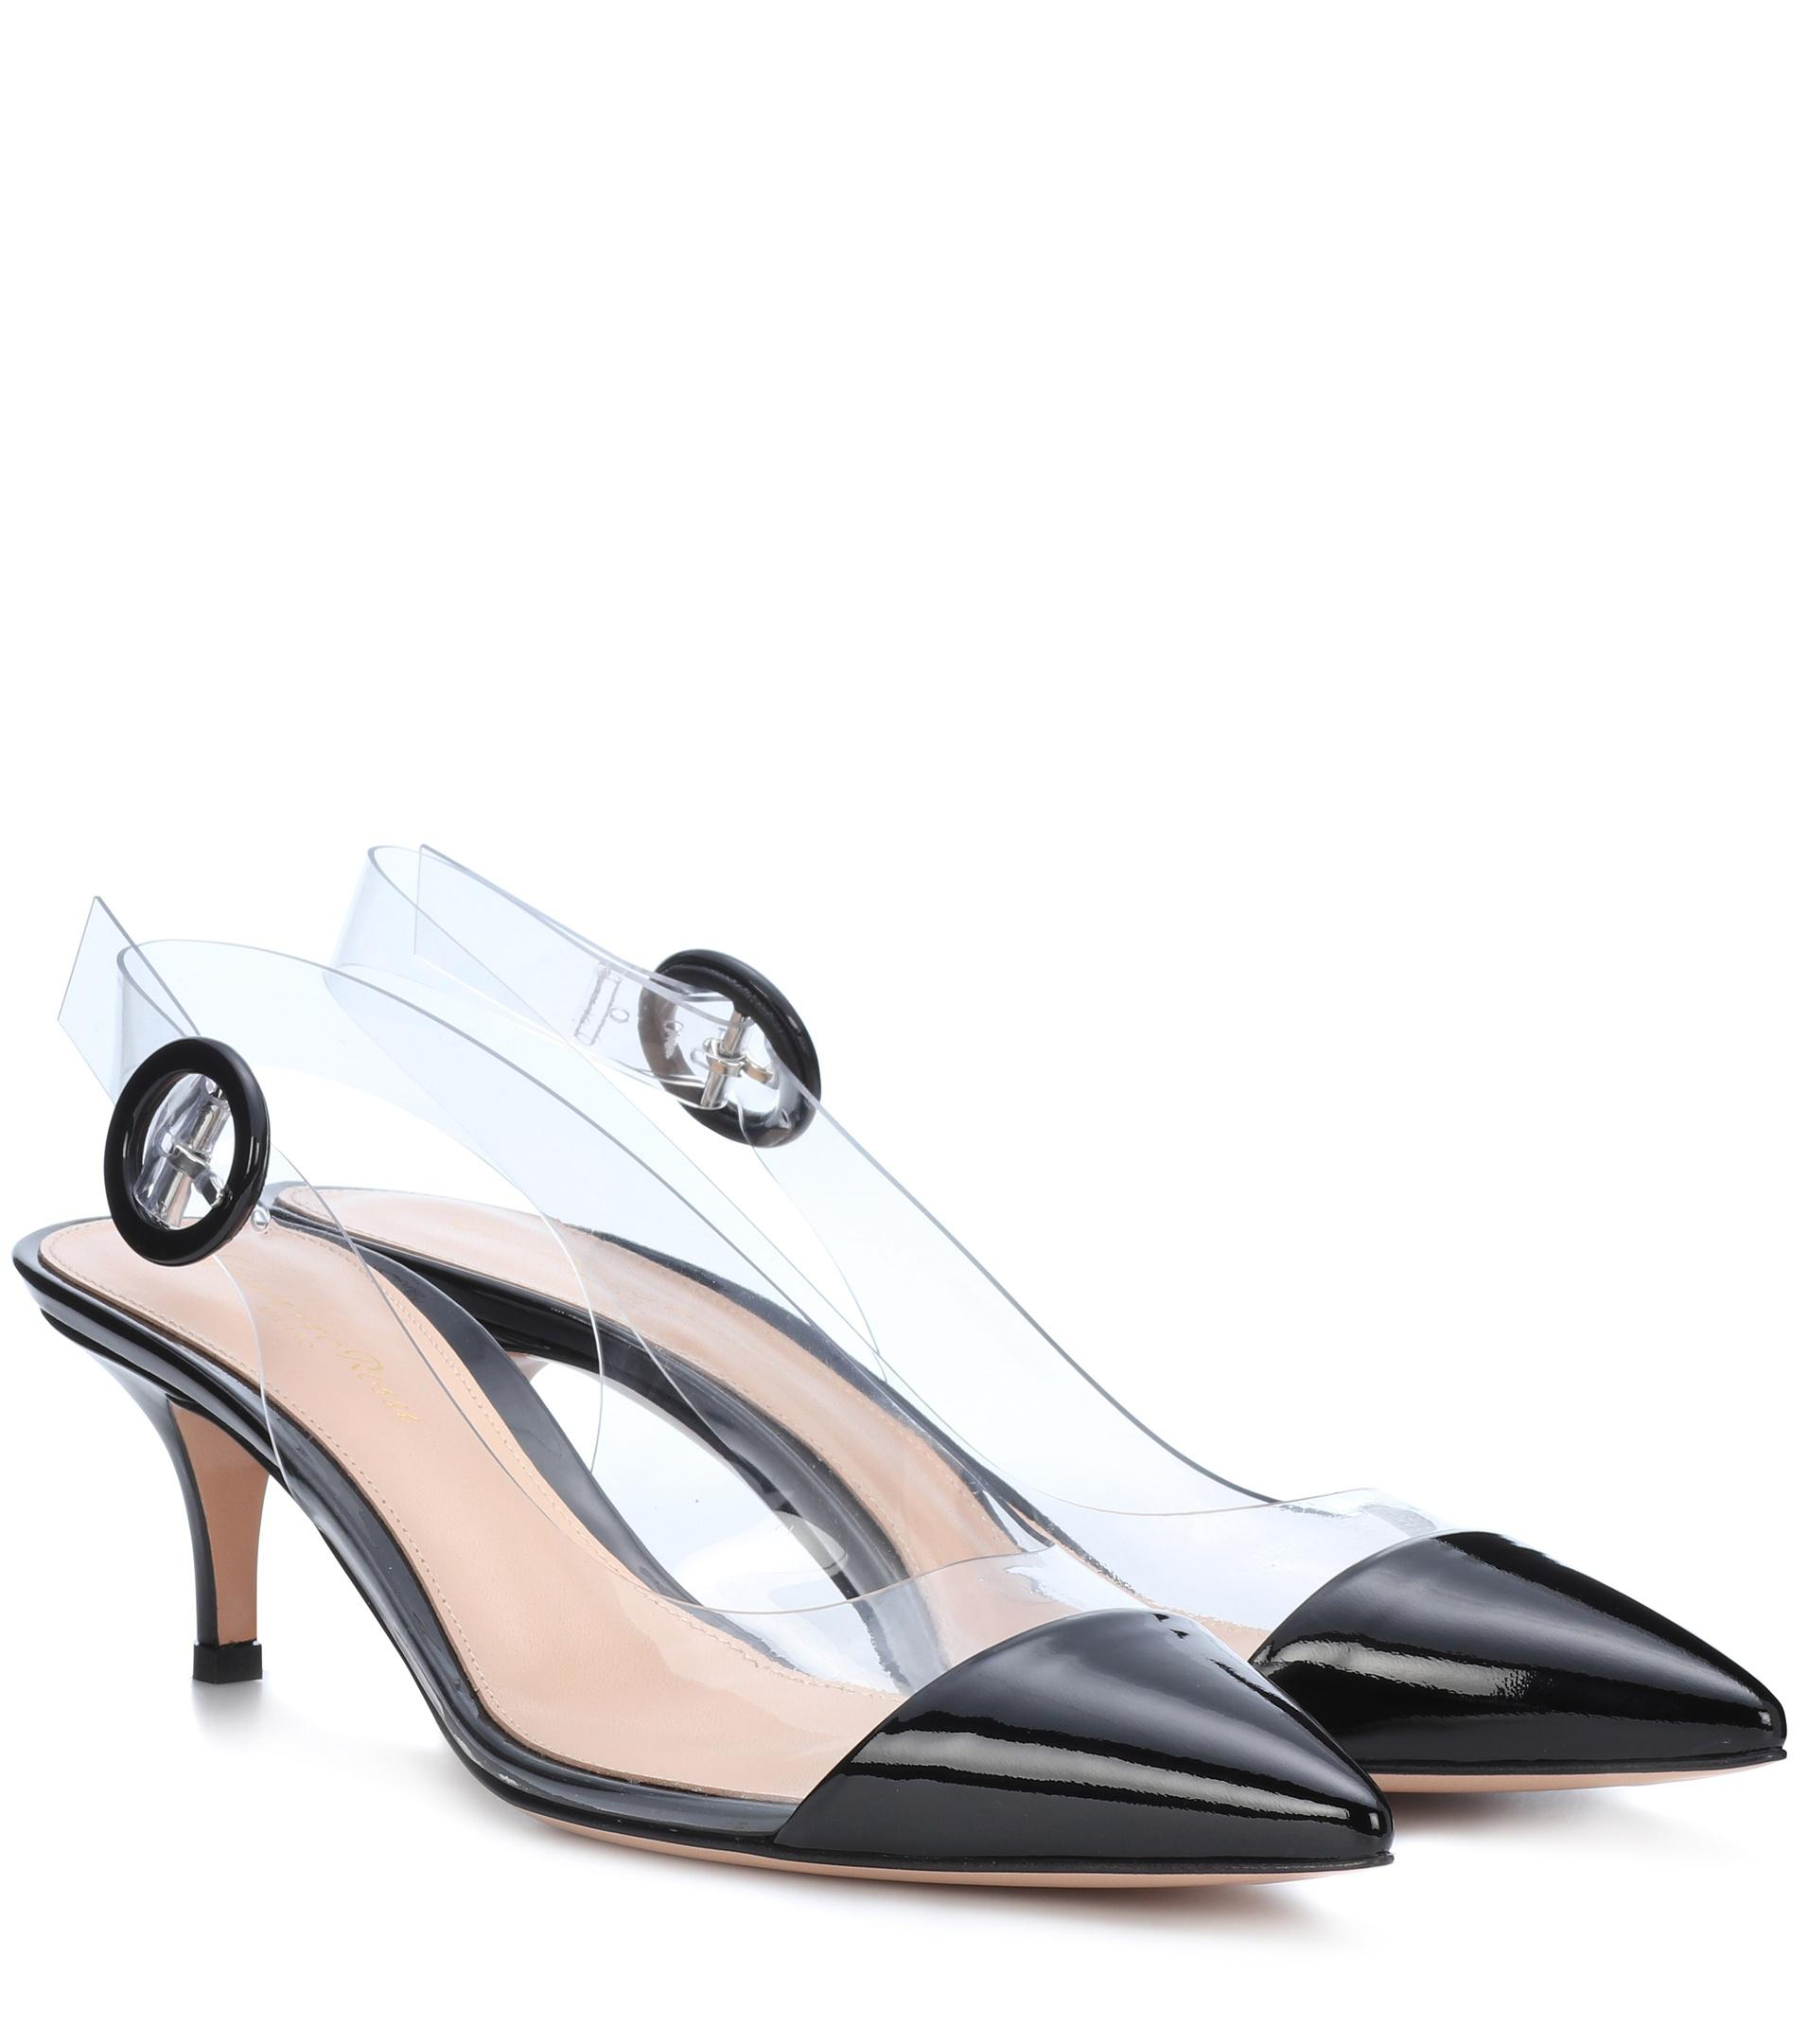 outlet fashionable Gianvito Rossi Alice slingback patent leather pumps cheap for sale wiki online pictures online high quality sale online 1fFNYSjVmC